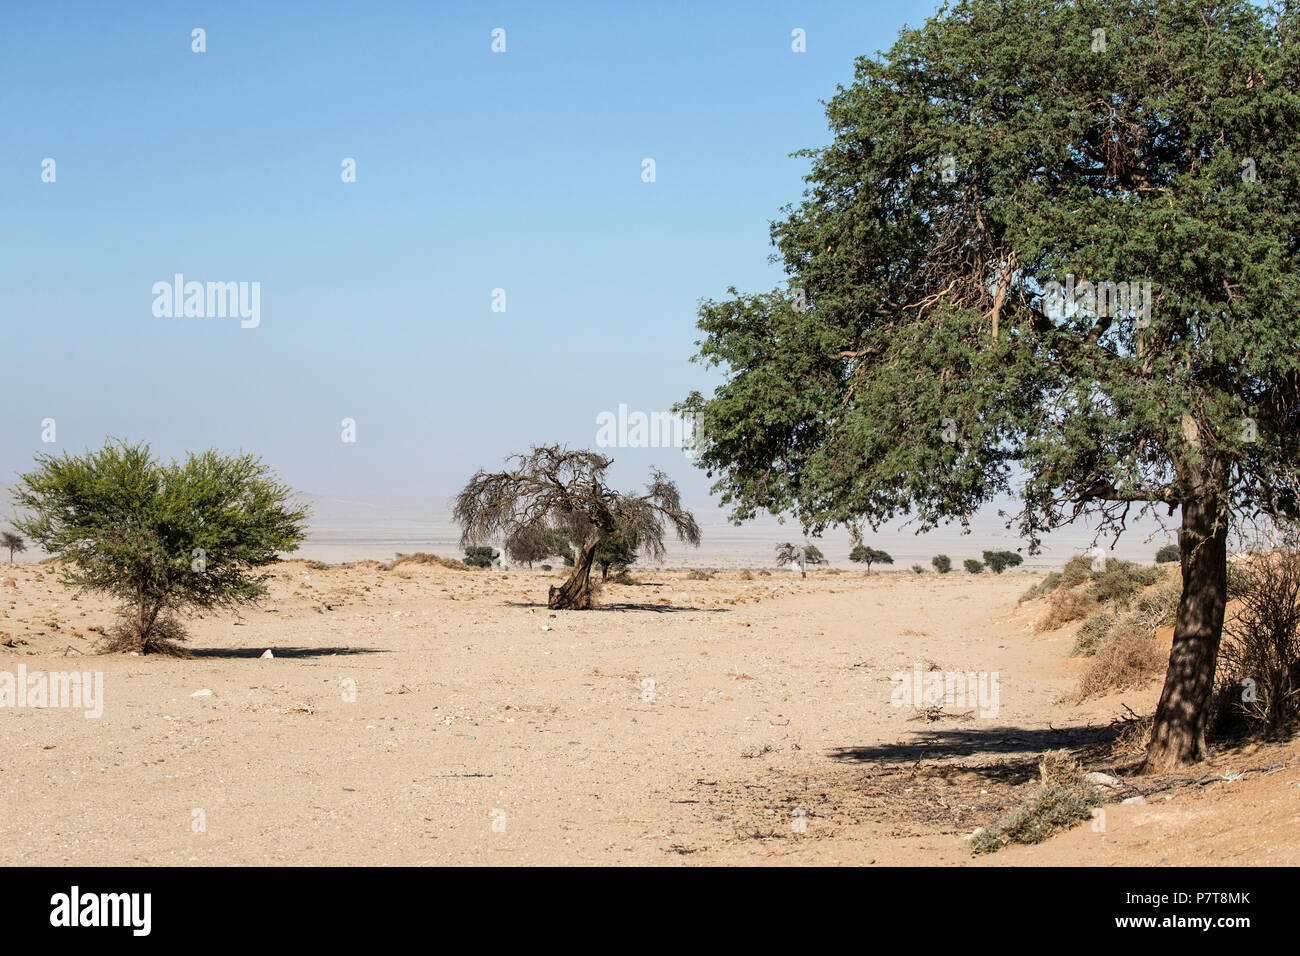 Camel thorn trees in a dry river bed in the Sperrgebiet near Aus.  Desert Scenery Namibia Stock Photo